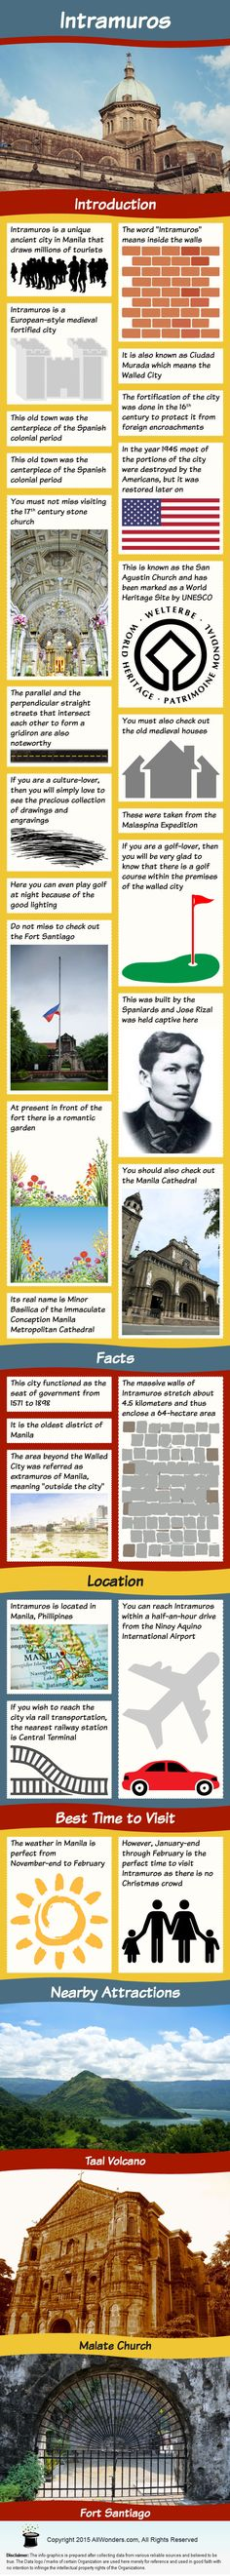 Intramuros Infographic showing Facts and Information about the ancient city in Manila , Philippines. Know about its Location, attractions, best time to visit and more.